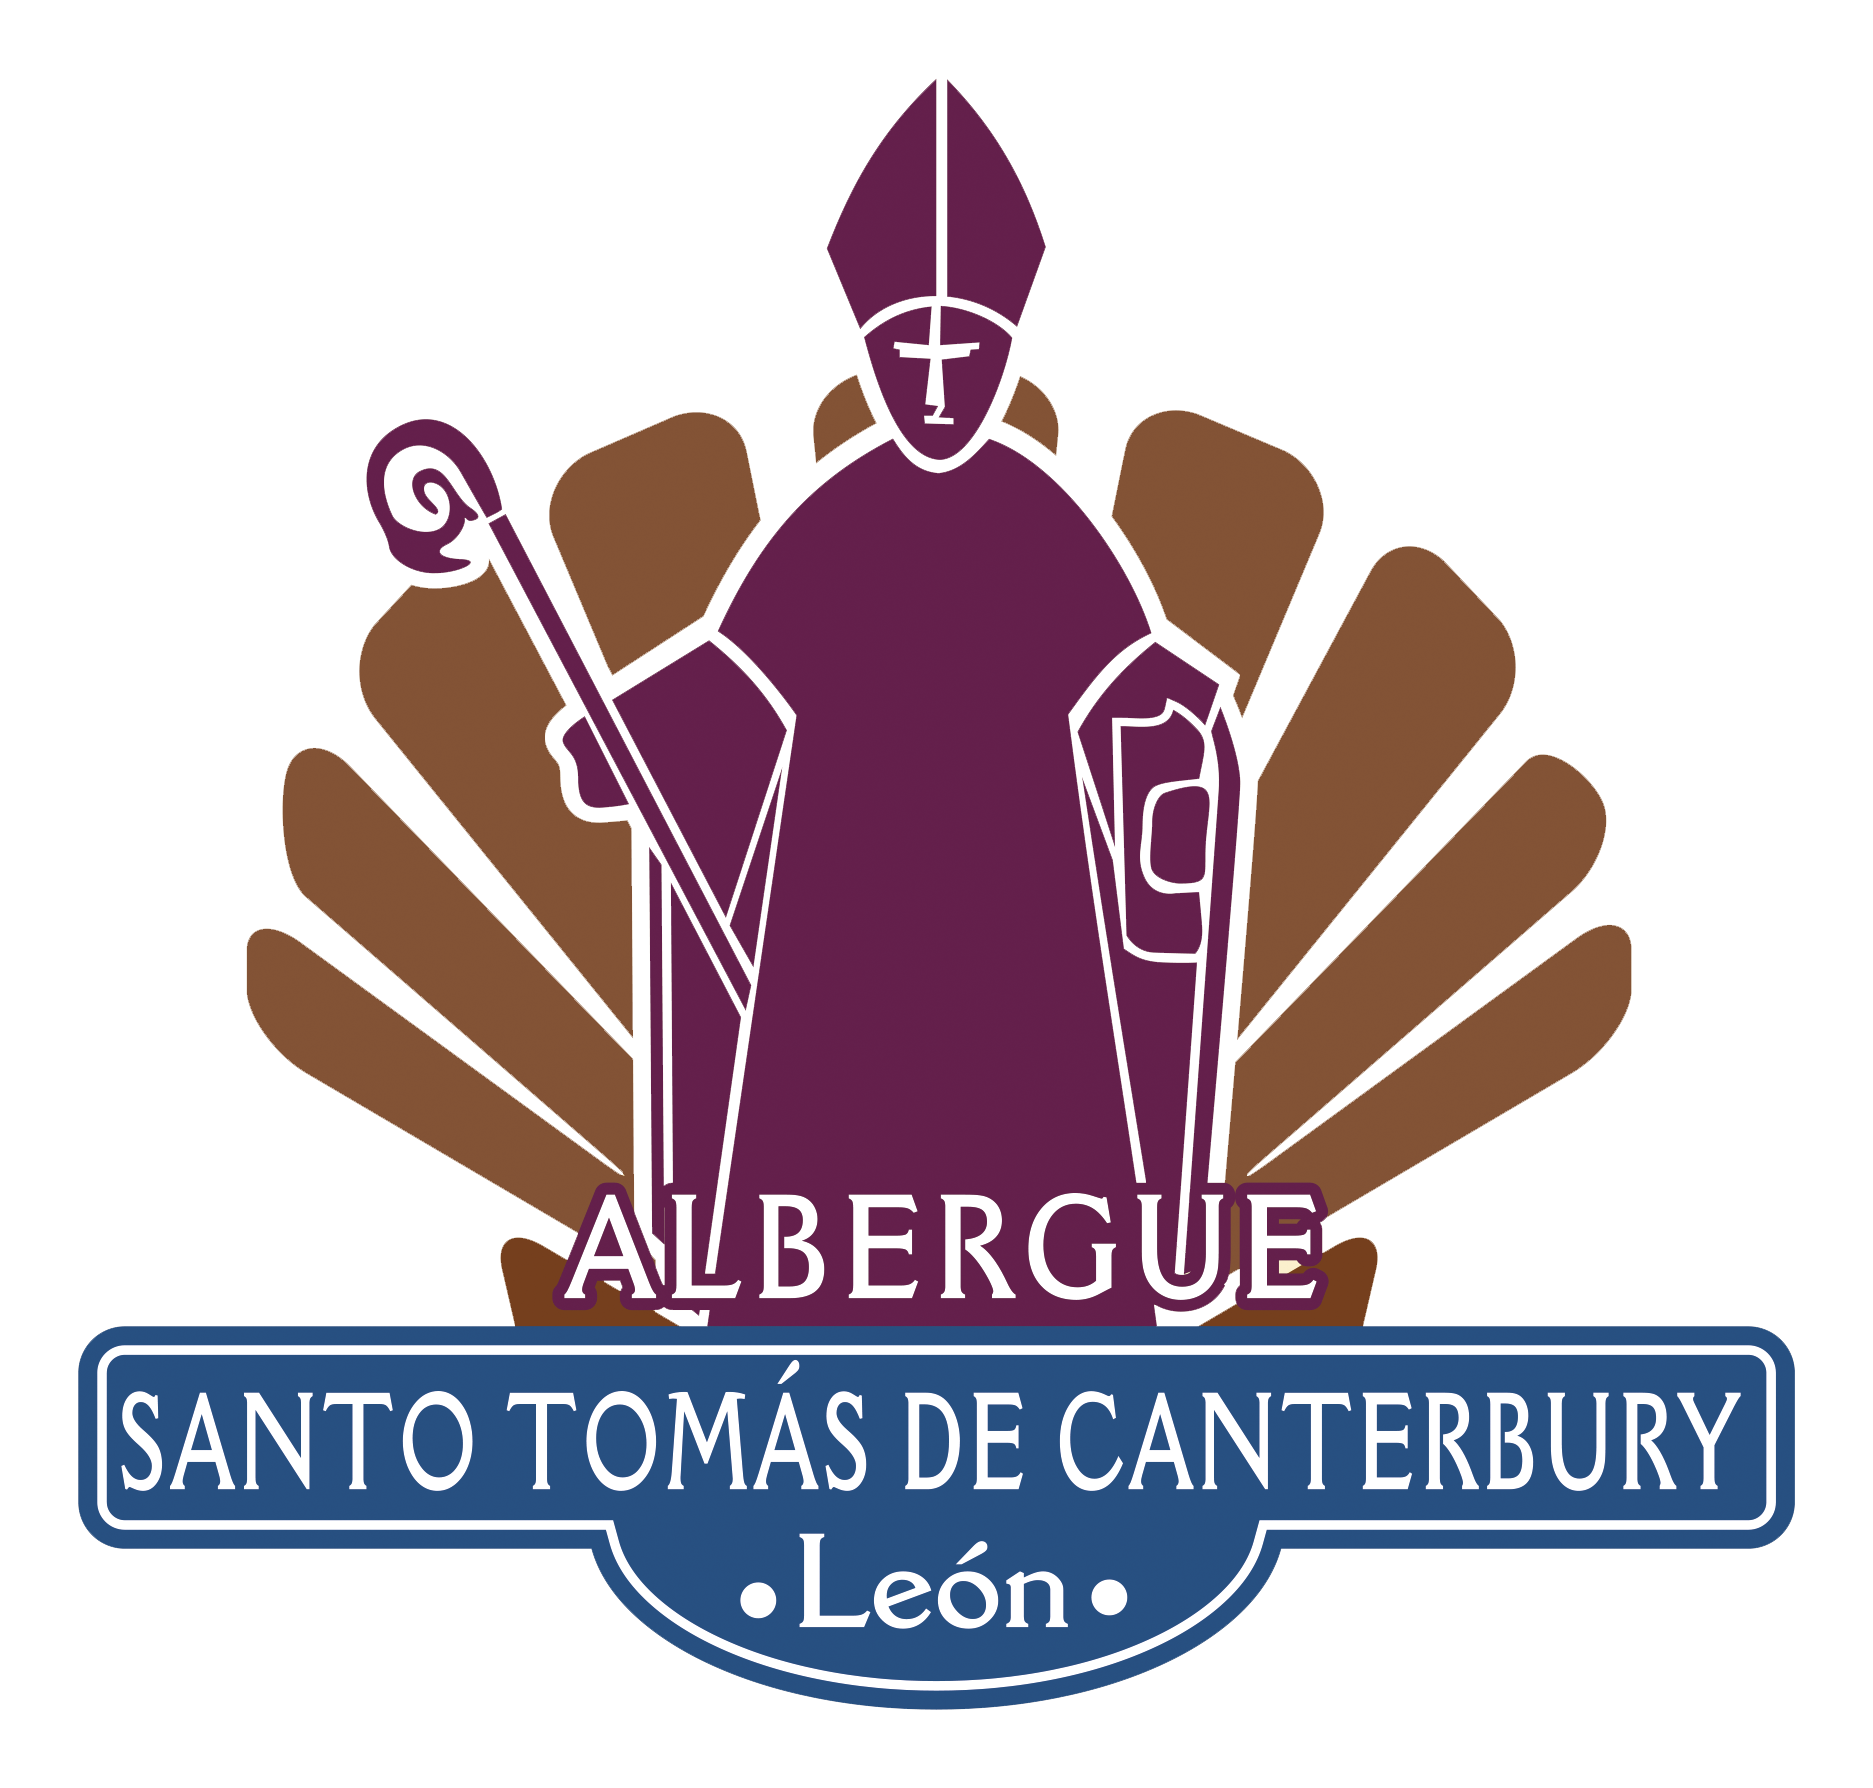 Albergue Santo Tomás de Canterbury